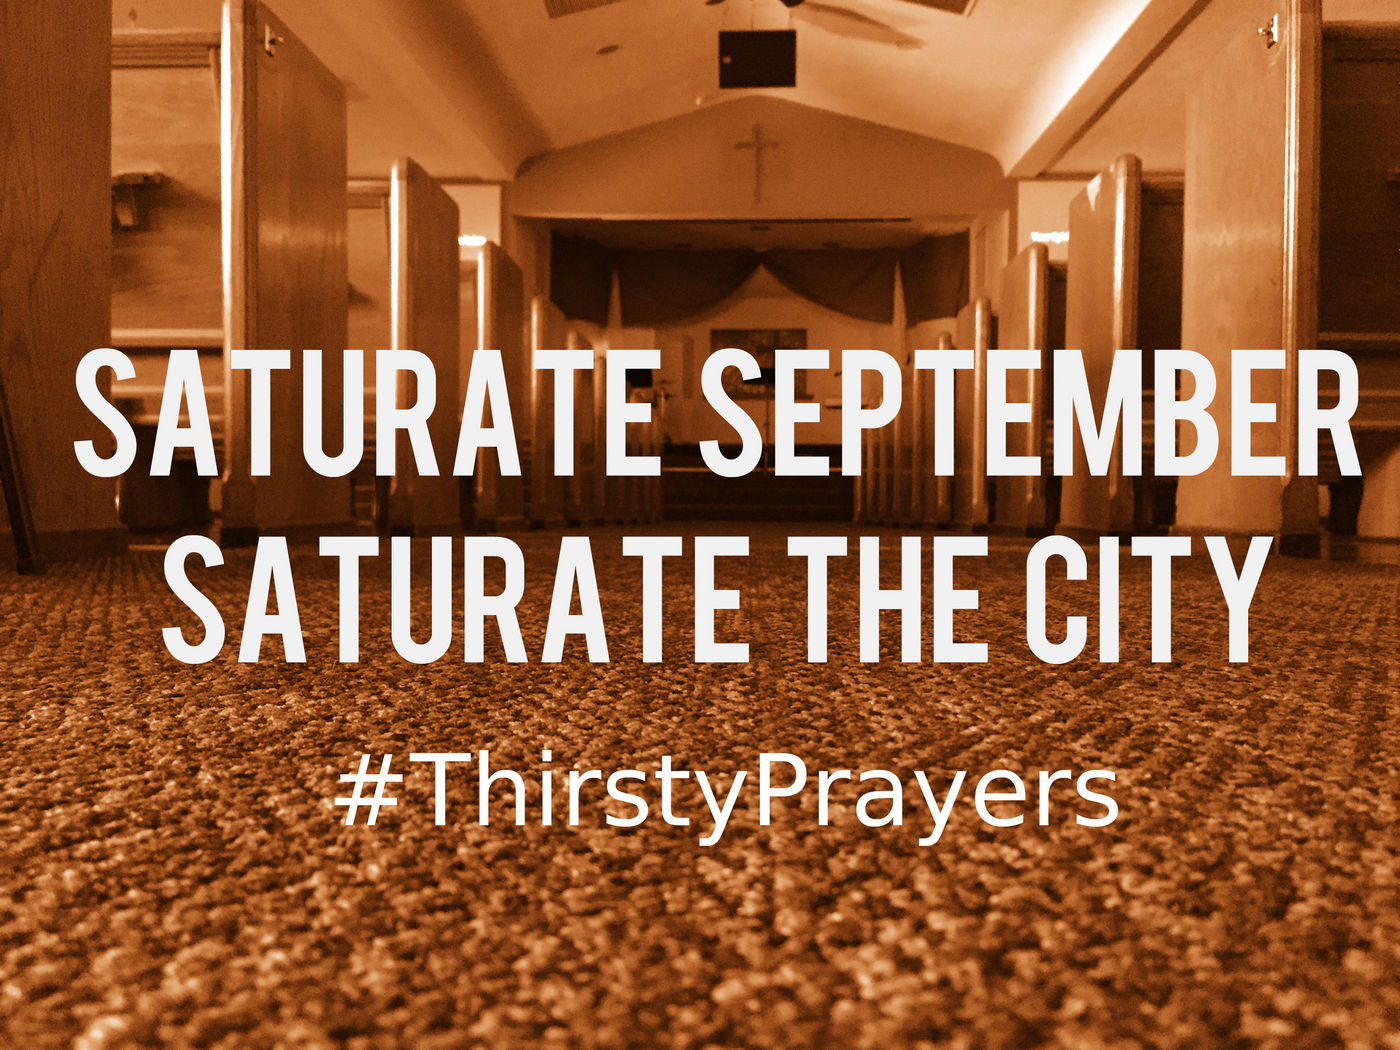 Saturate Sept 2015